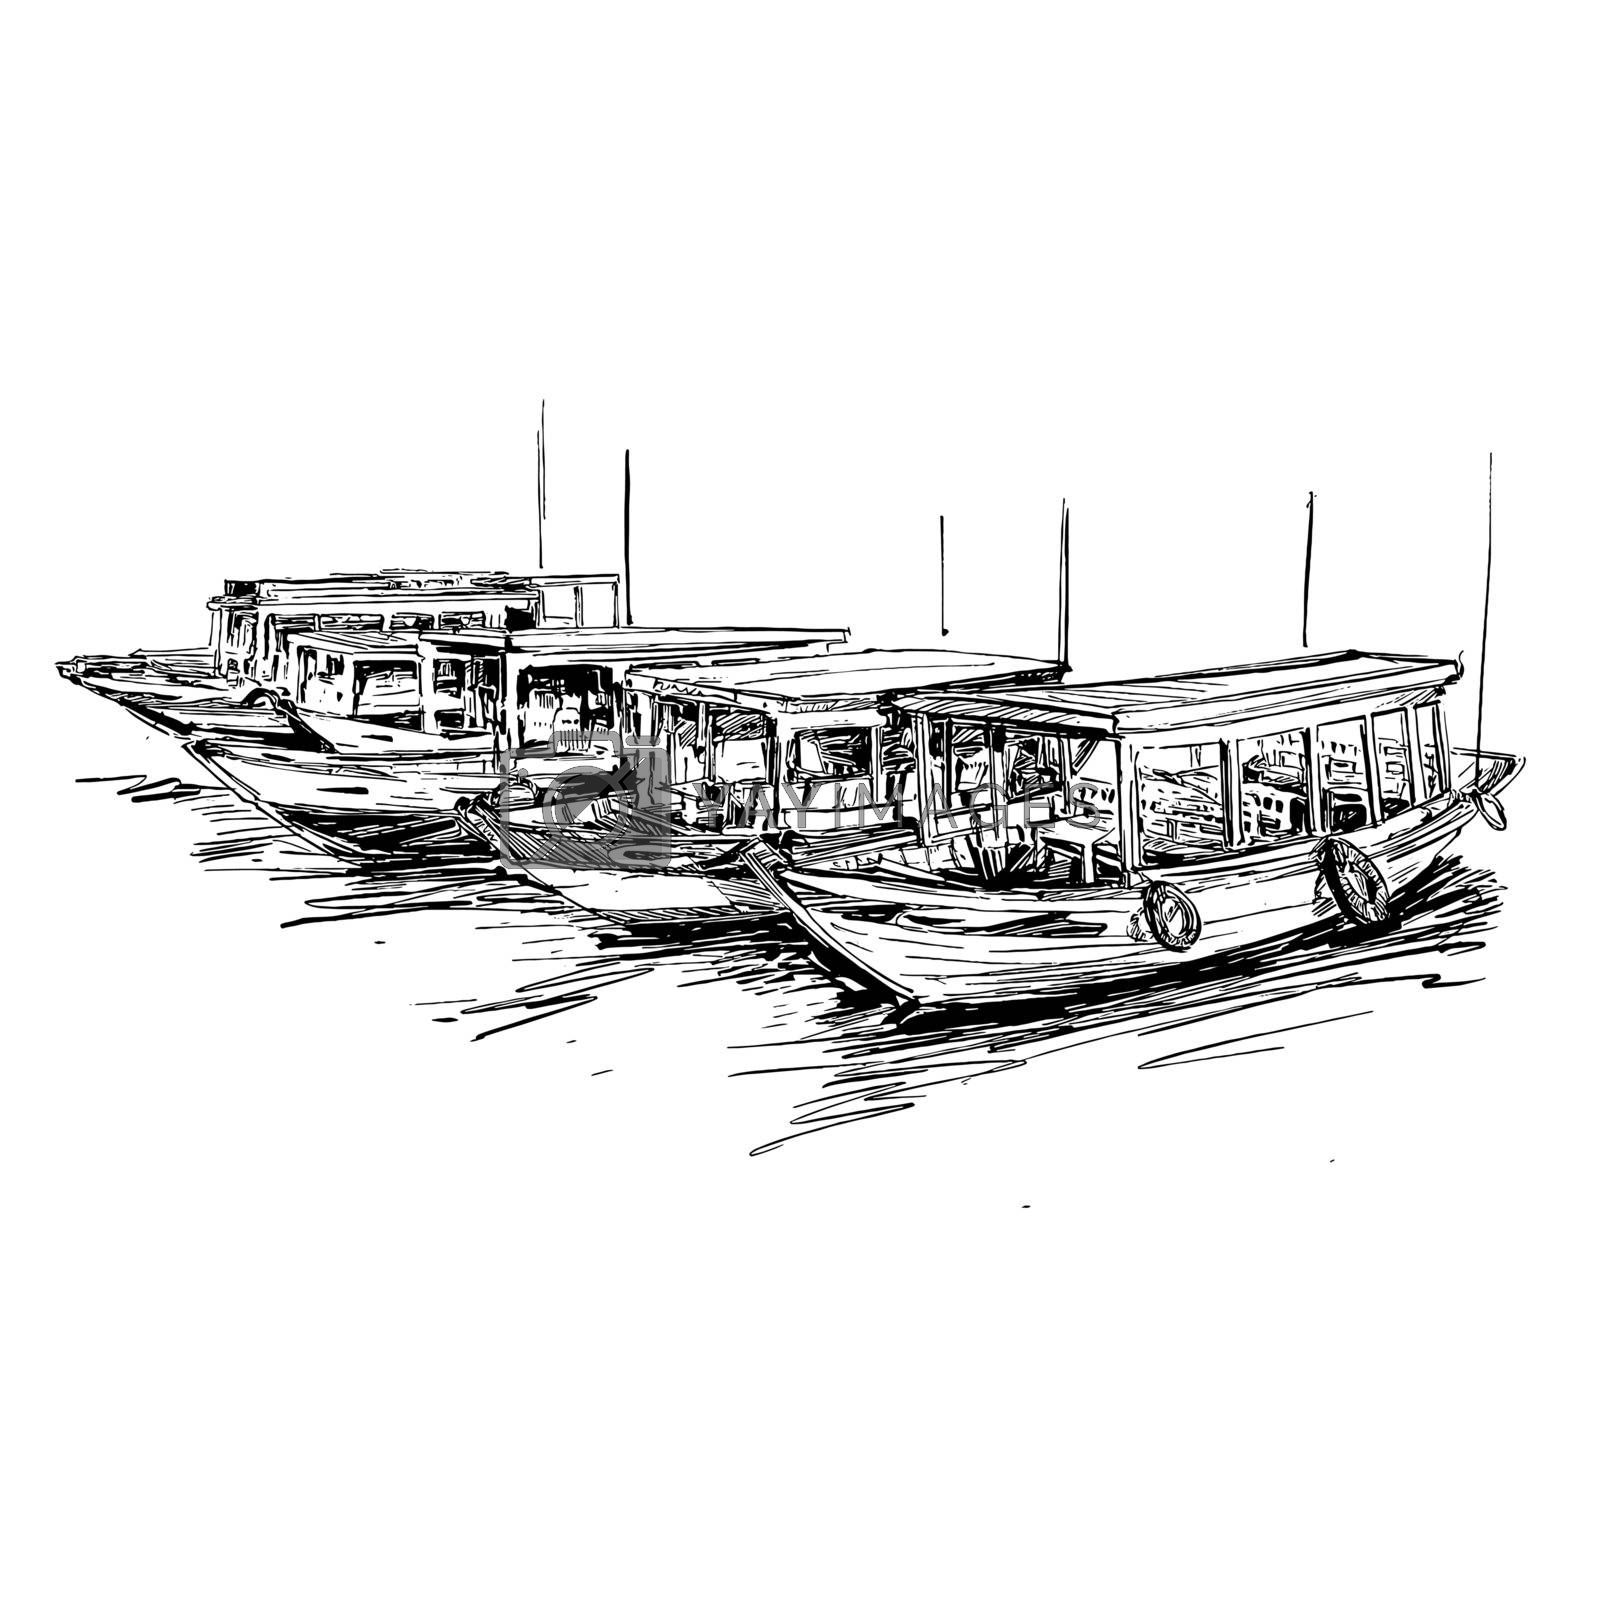 Drawing of the boat in Vietnam